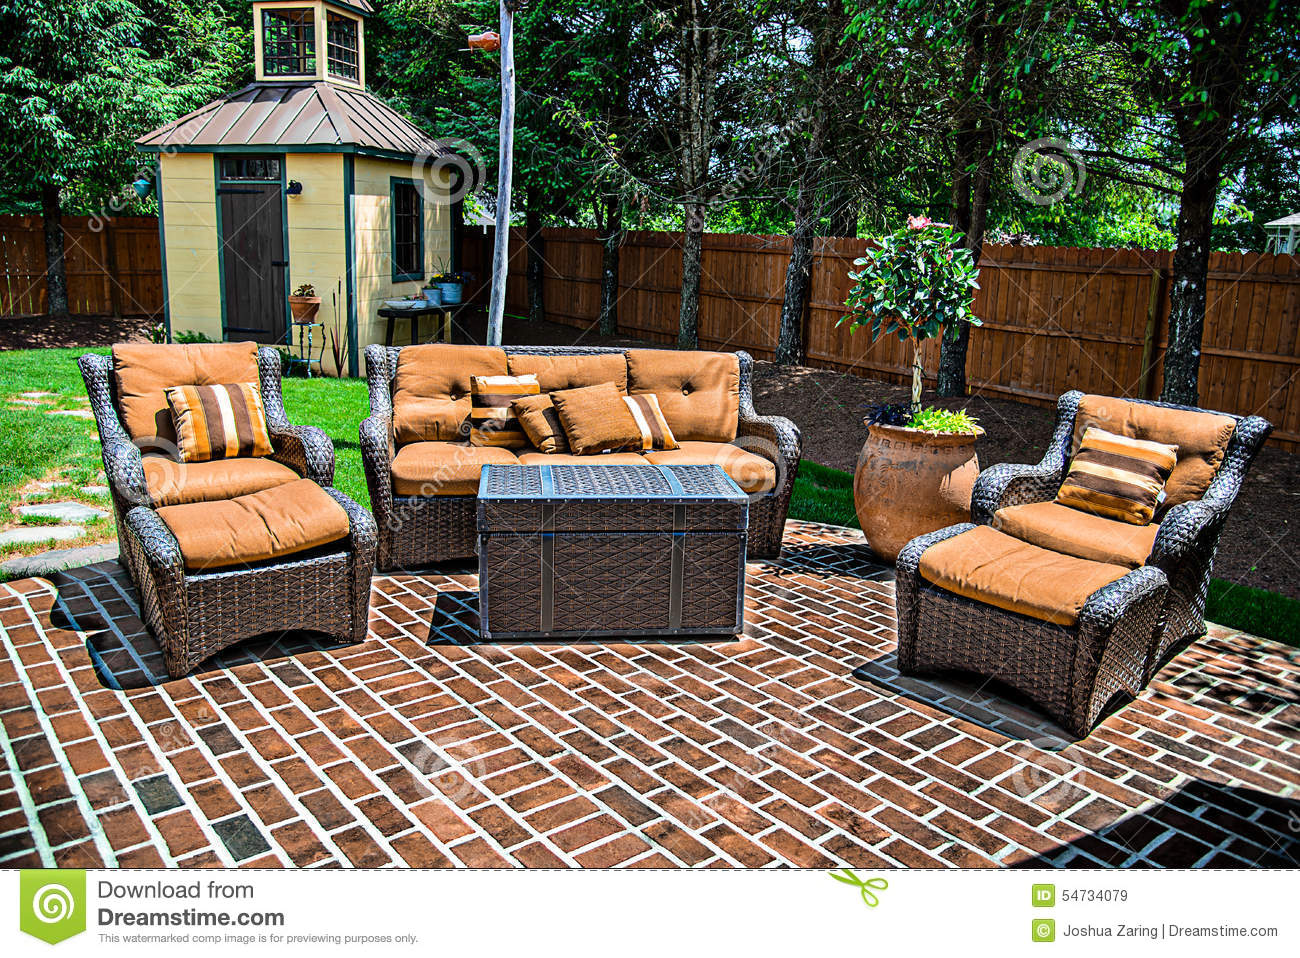 Brick Patio And Furniture Stock Photo - Image: 54734079